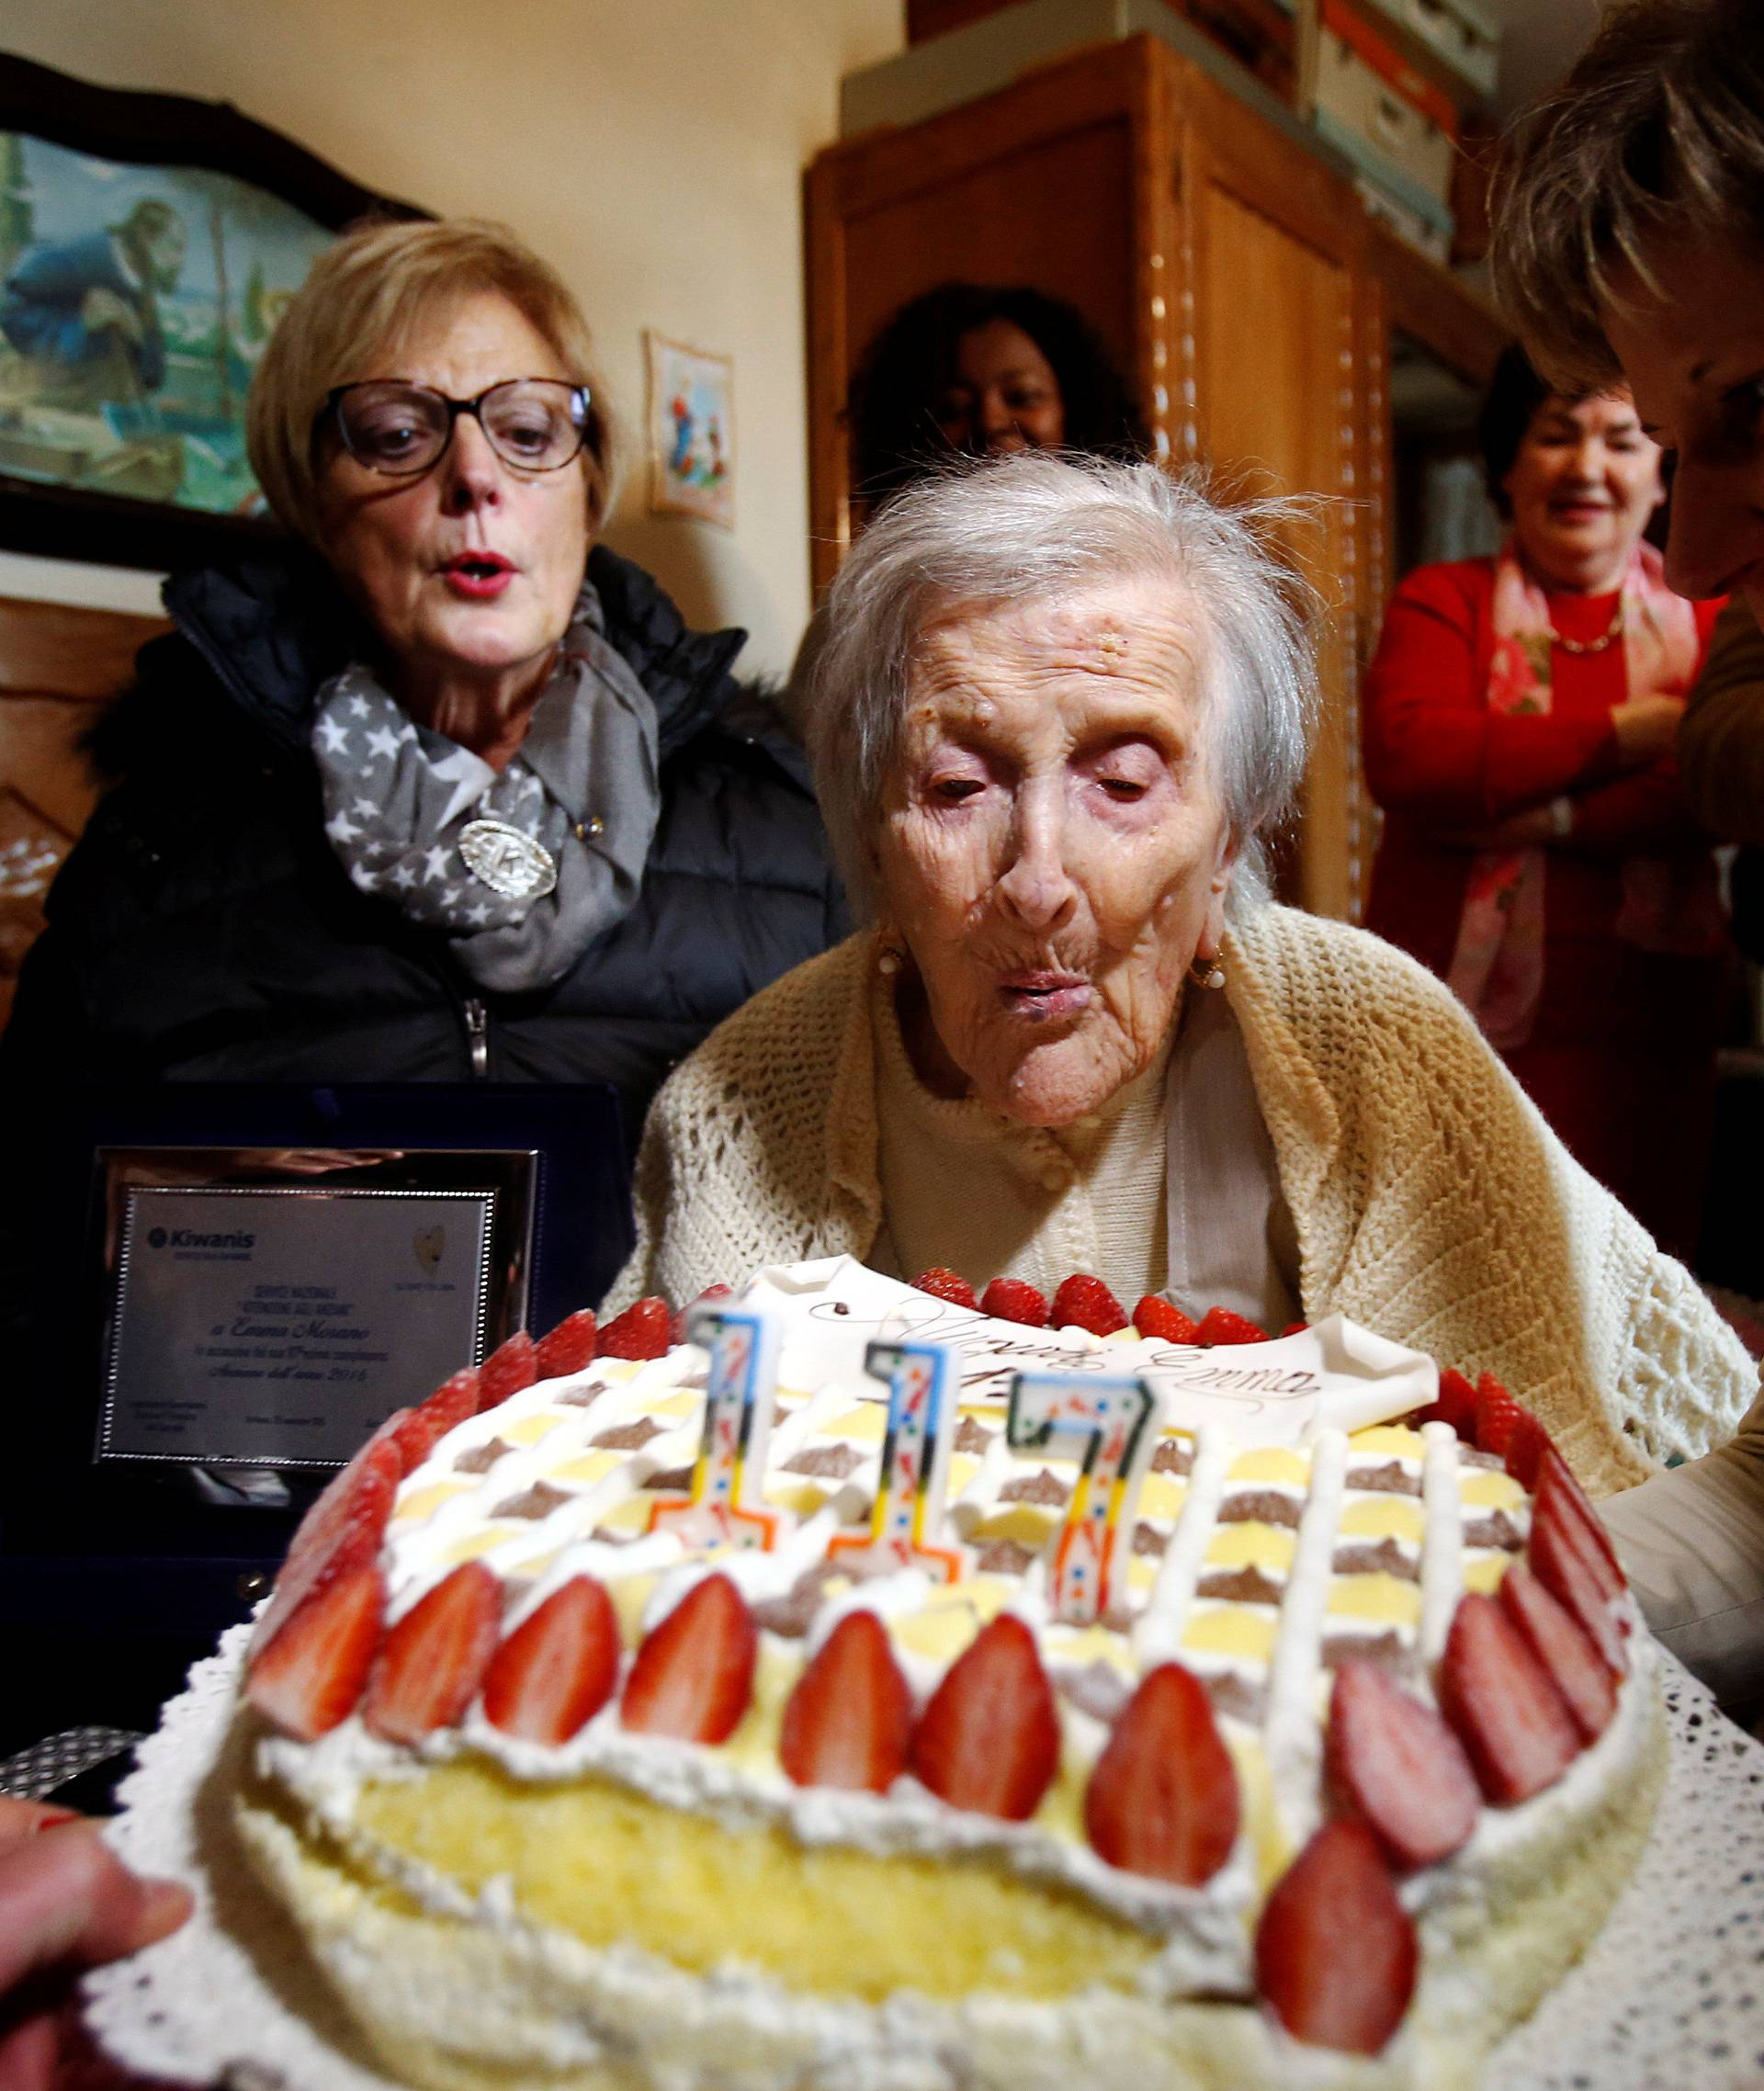 Emma Morano, thought to be the world's oldest person and the last to be born in the 1800s, blows candles during her 117th birthday in Verbania